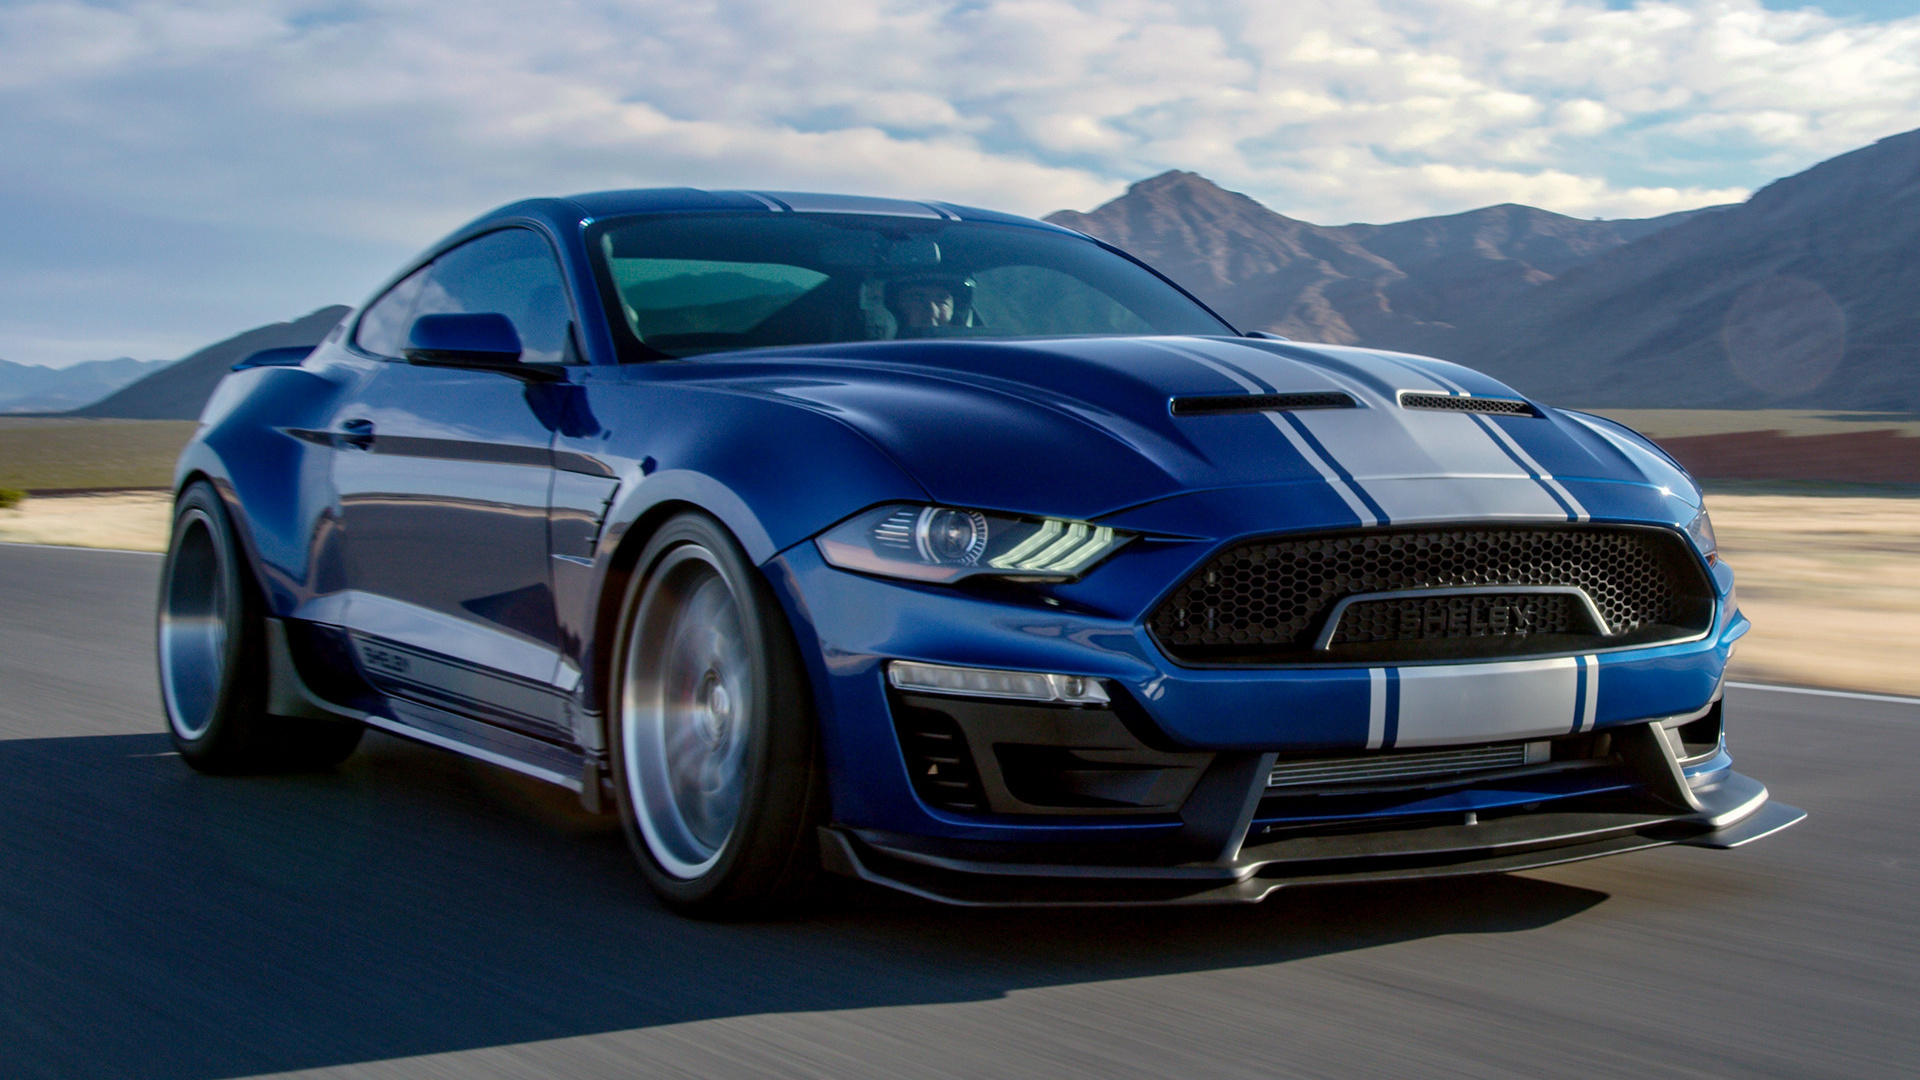 2018 Shelby Super Snake Widebody Wallpapers And Hd